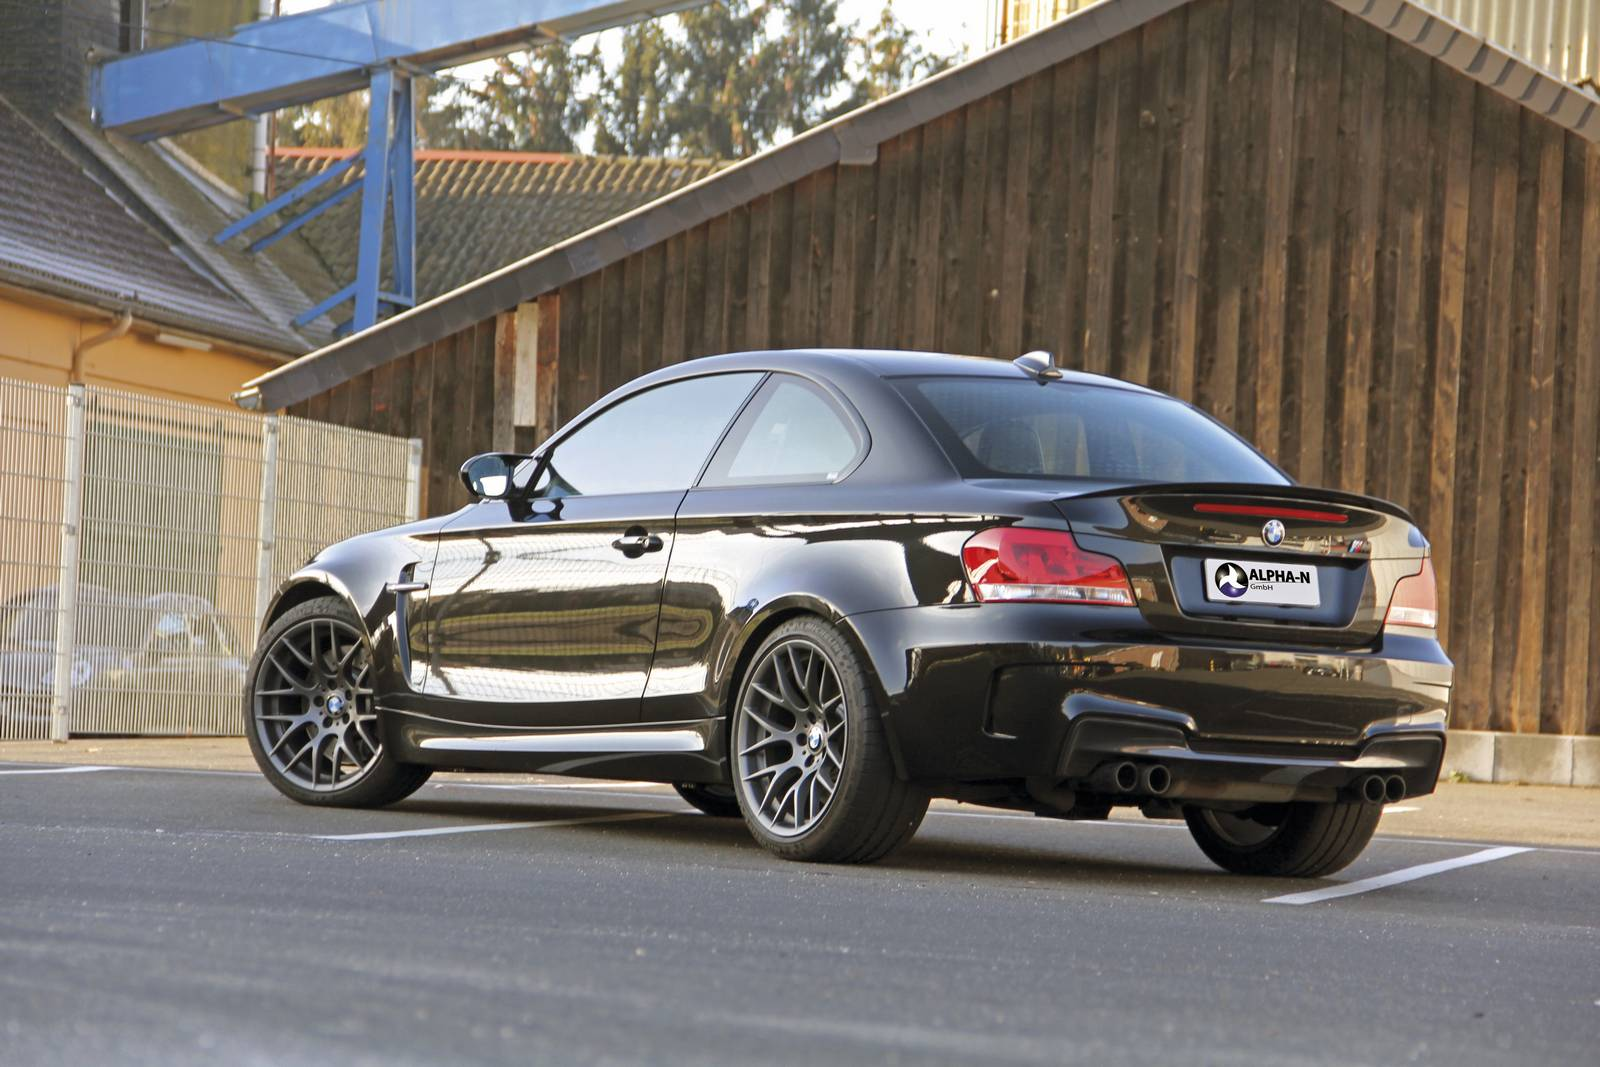 official 564hp bmw 1 series m coupe by alpha n. Black Bedroom Furniture Sets. Home Design Ideas